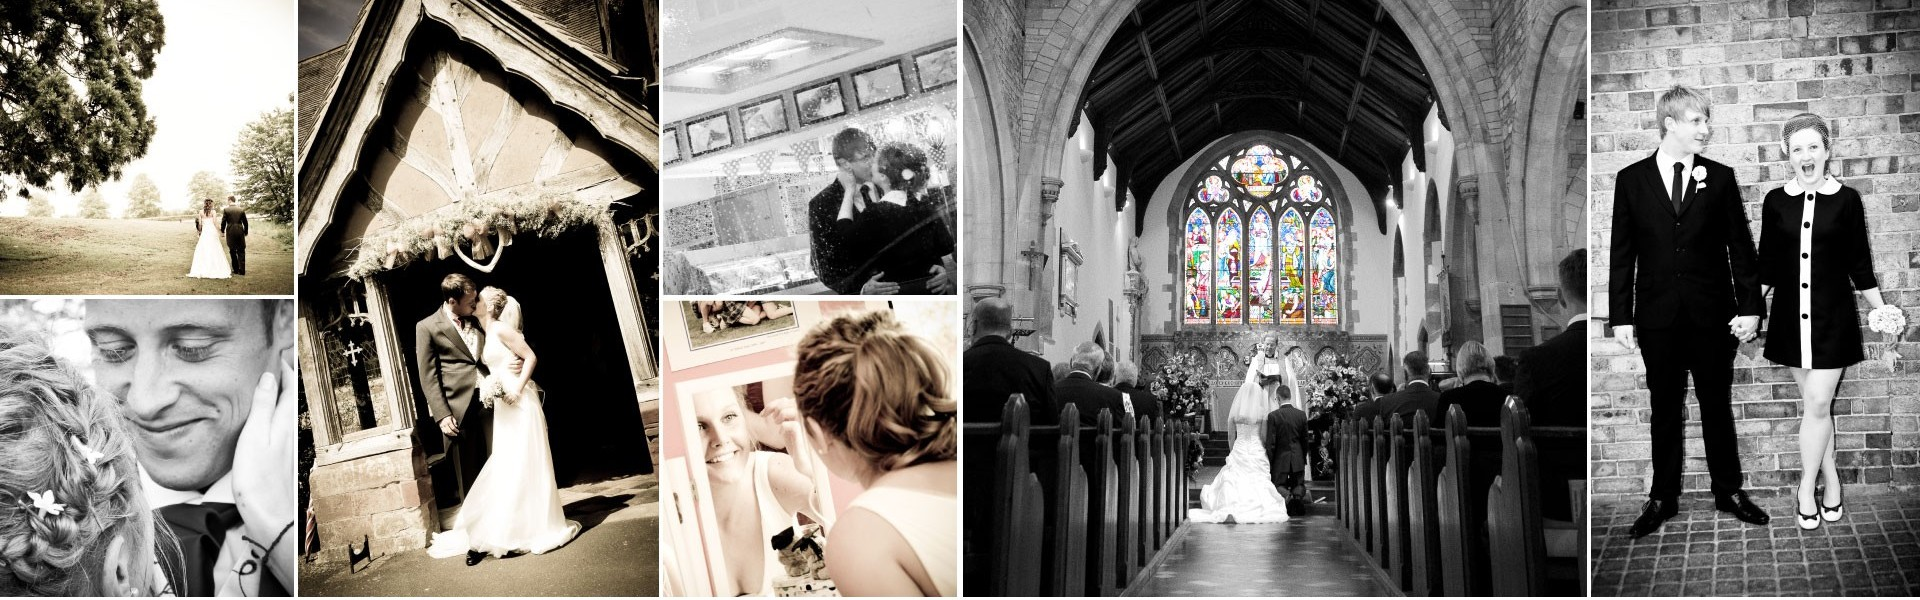 Wedding Photograph Bromsgrove,  Classical Wedding Photography